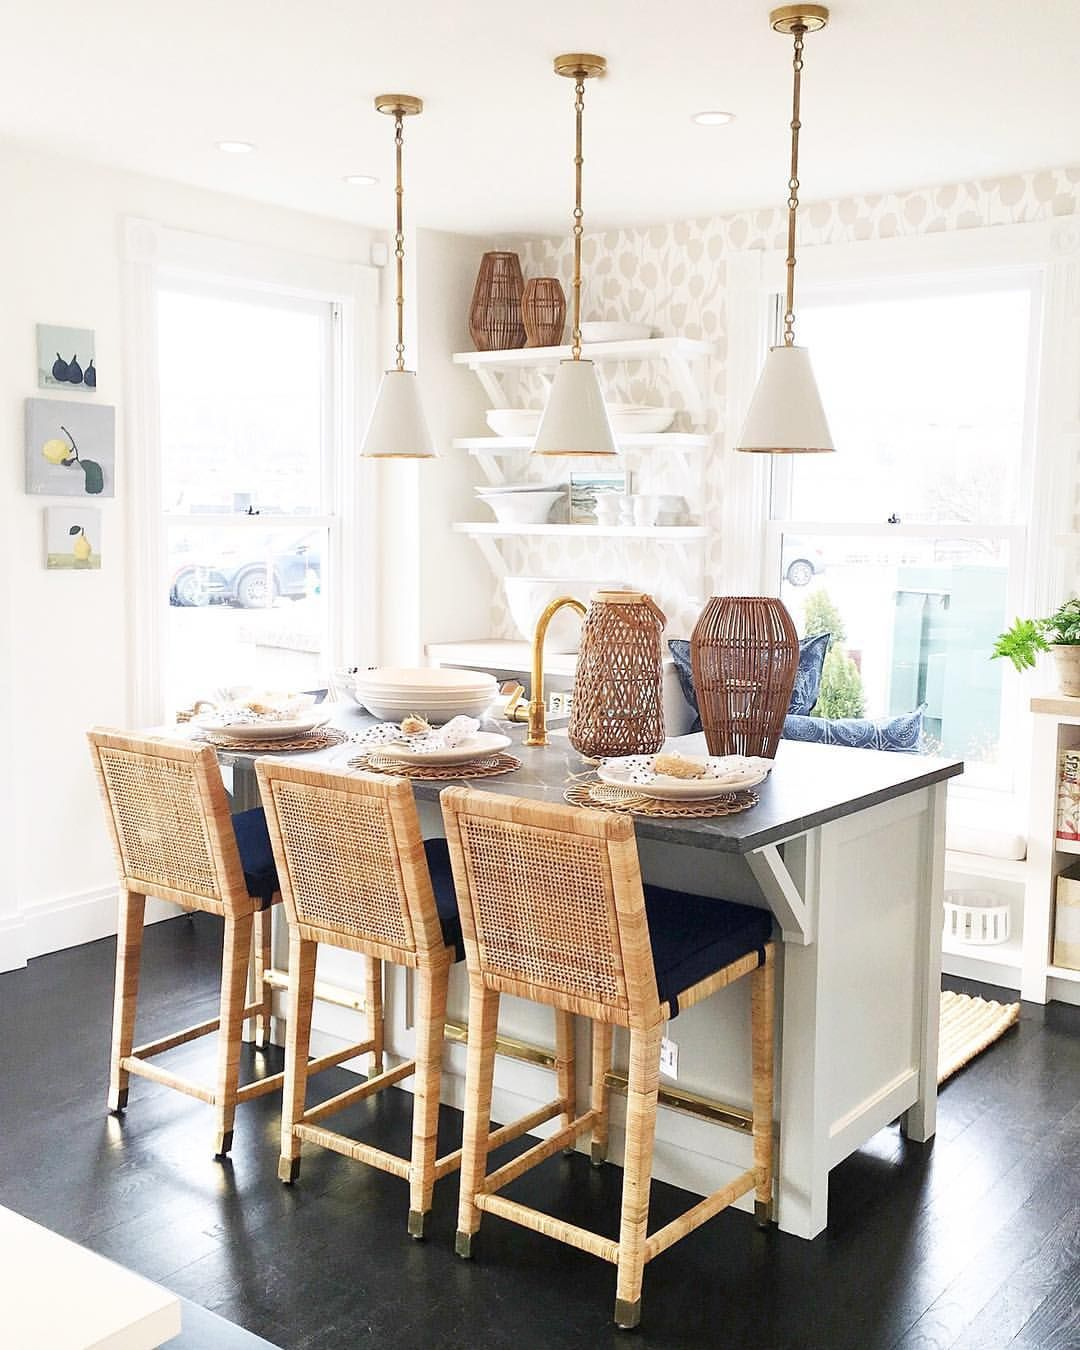 30 Beautiful And Inspiring Light Filled Kitchens With: Pin By Whitney Renee On For The Home